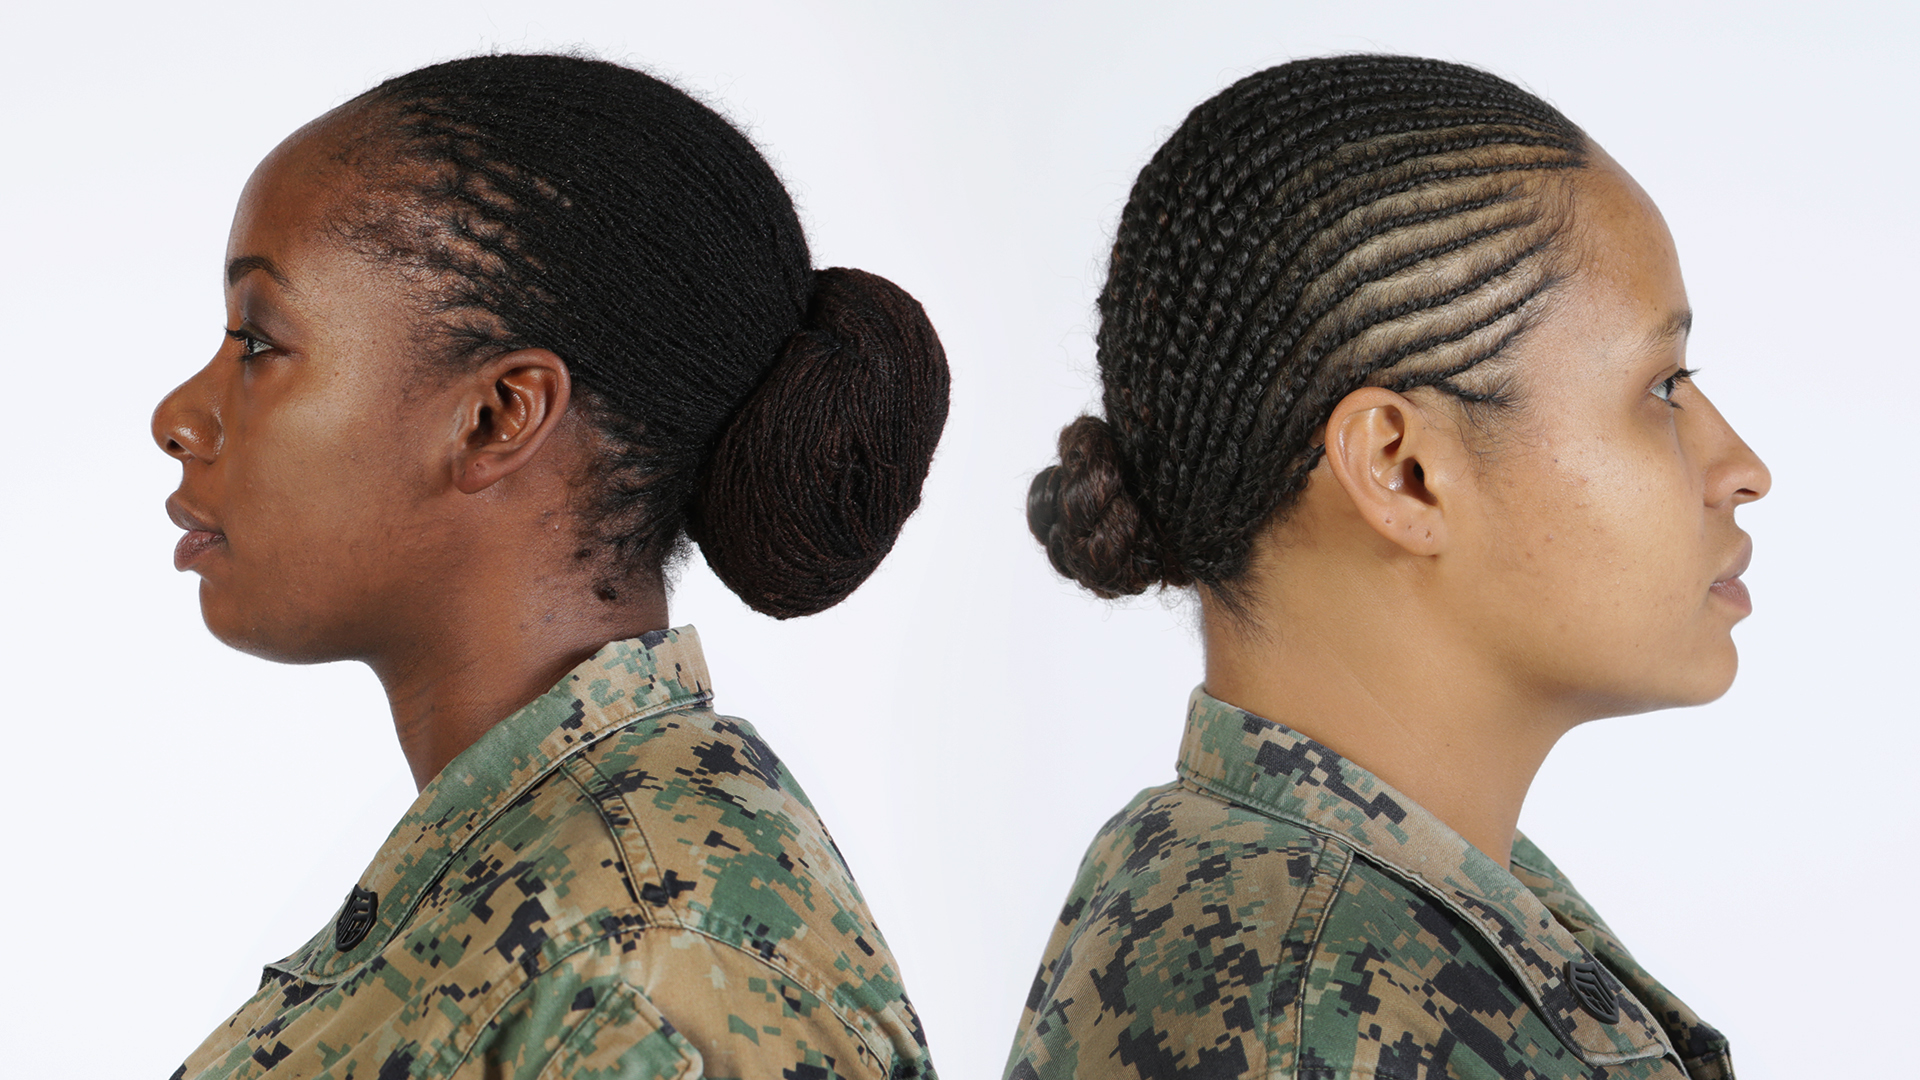 Uniform board decision updates hair regulations > The Official ...